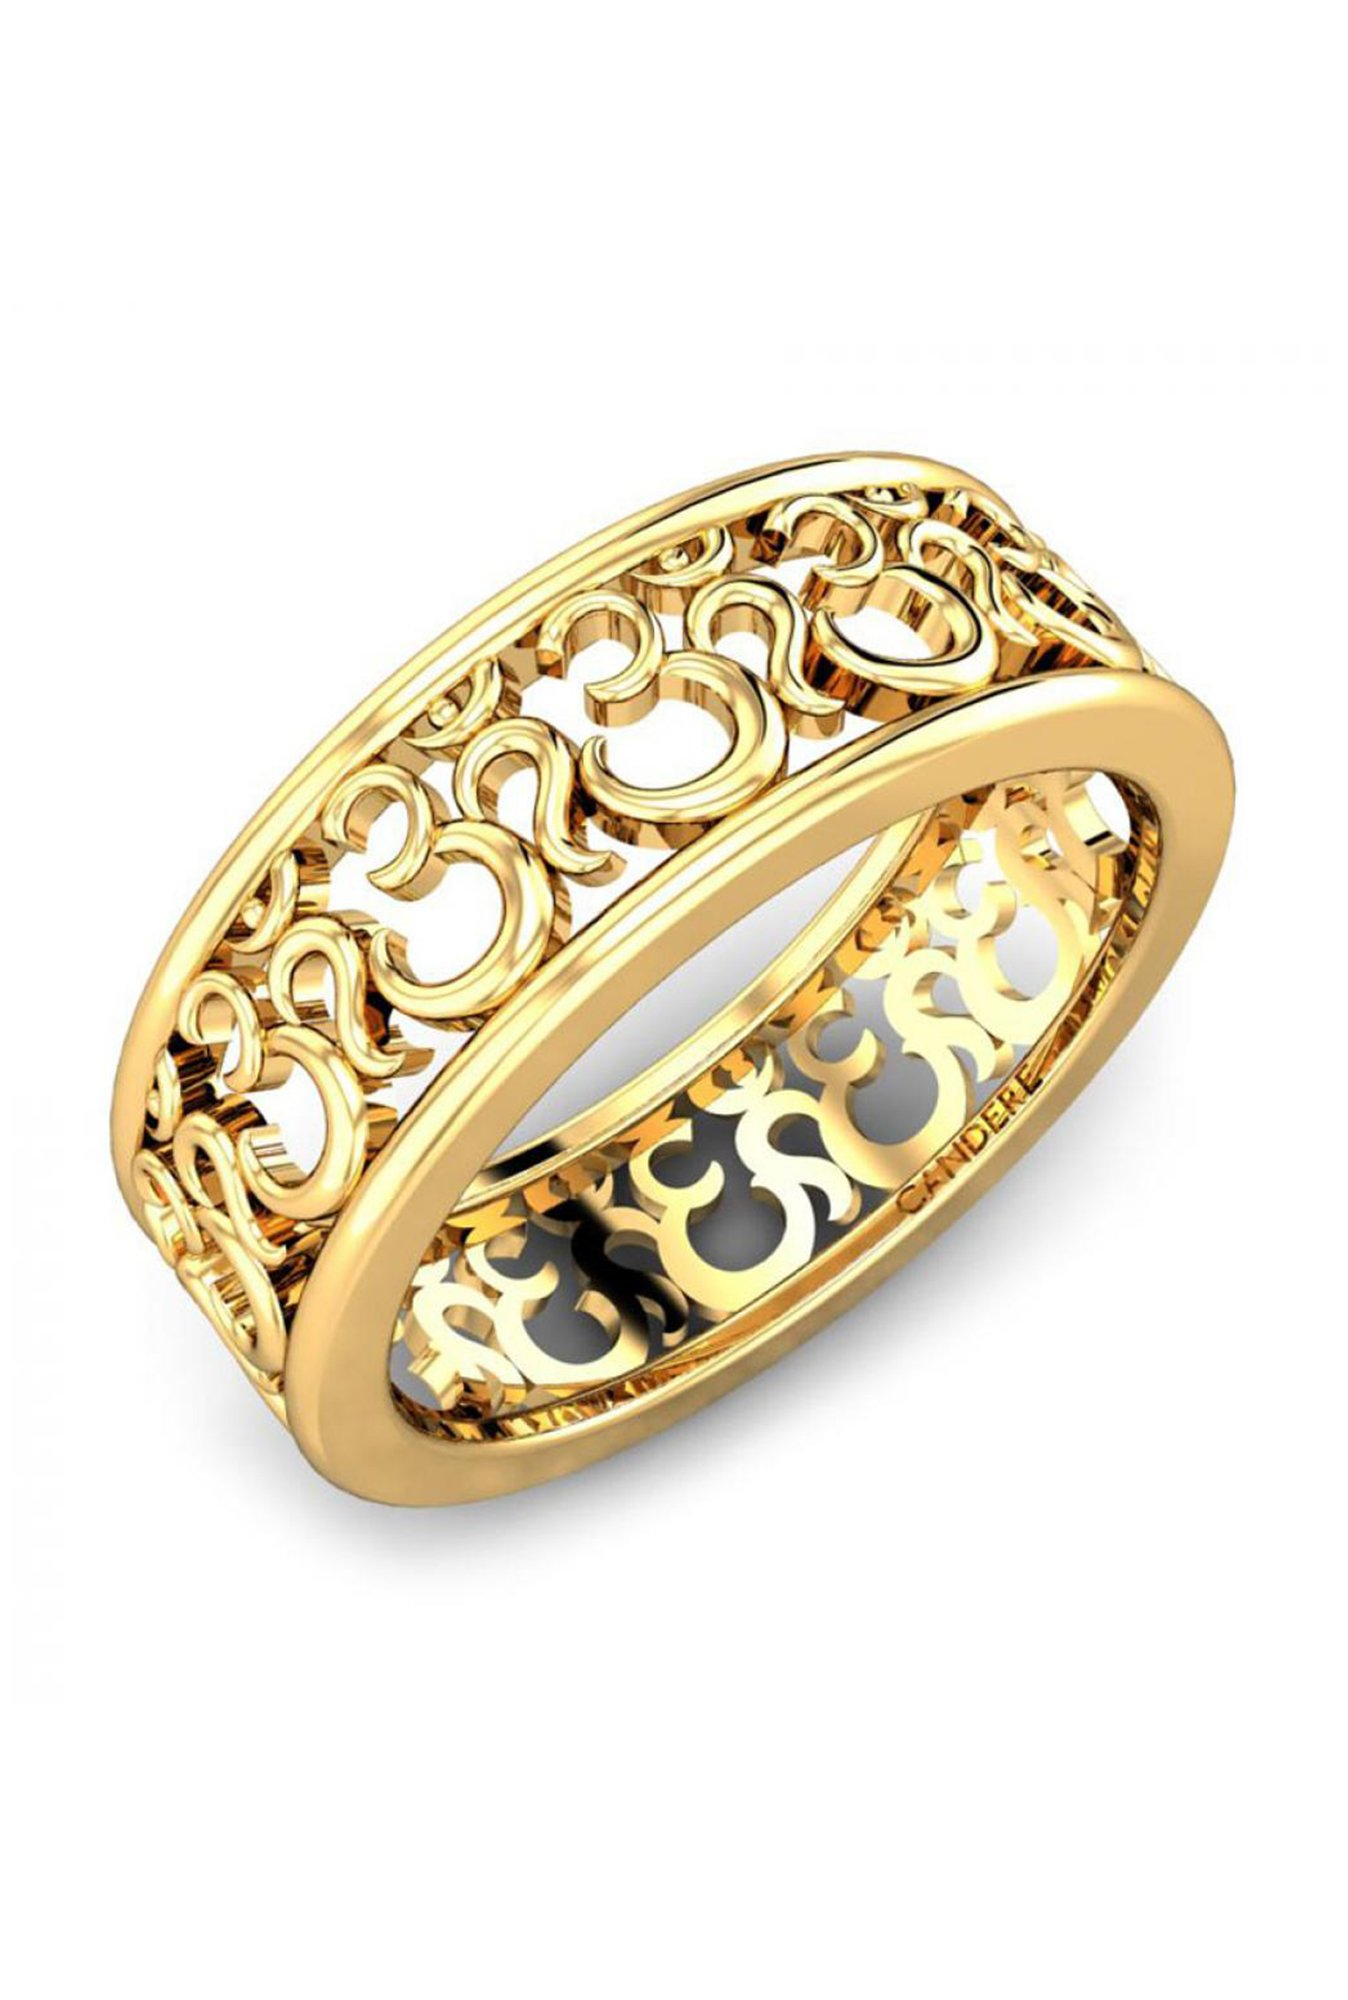 3788adf55 Buy Candere by Kalyan Jewellers Om 22k Gold Ring Online At Best Price @  Tata CLiQ